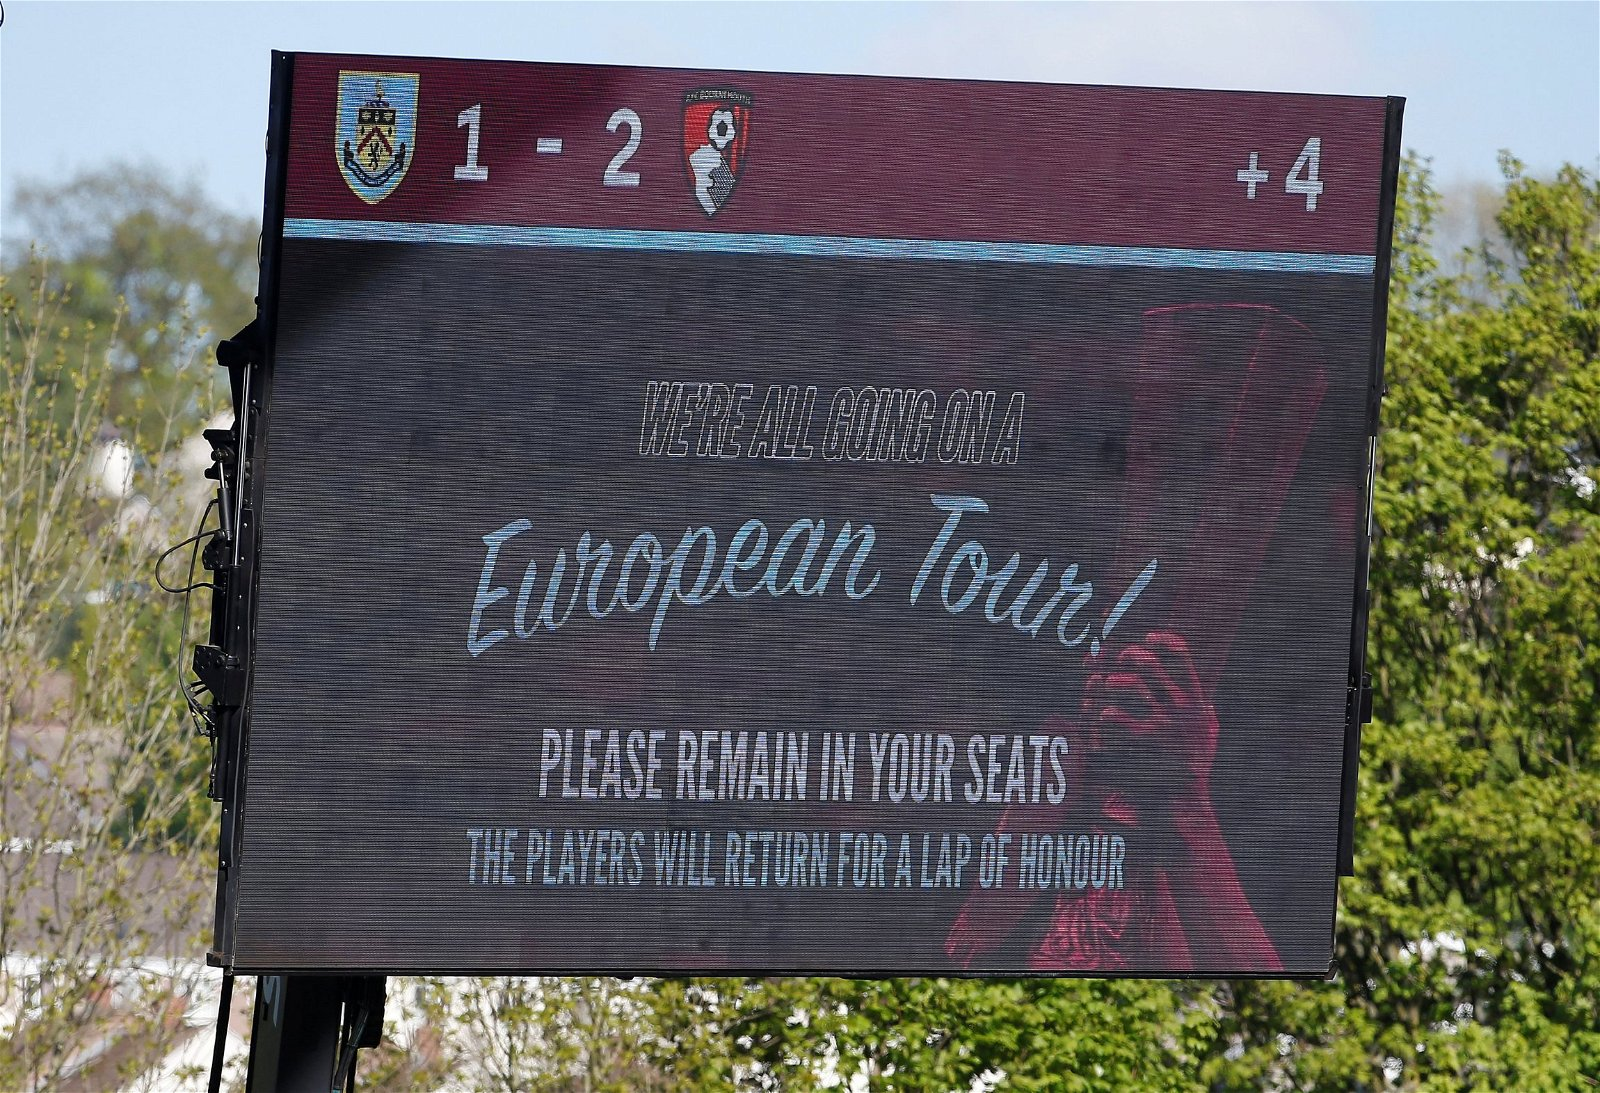 Bournemouth beat Burnley, but the hosts qualified for Europa 2018